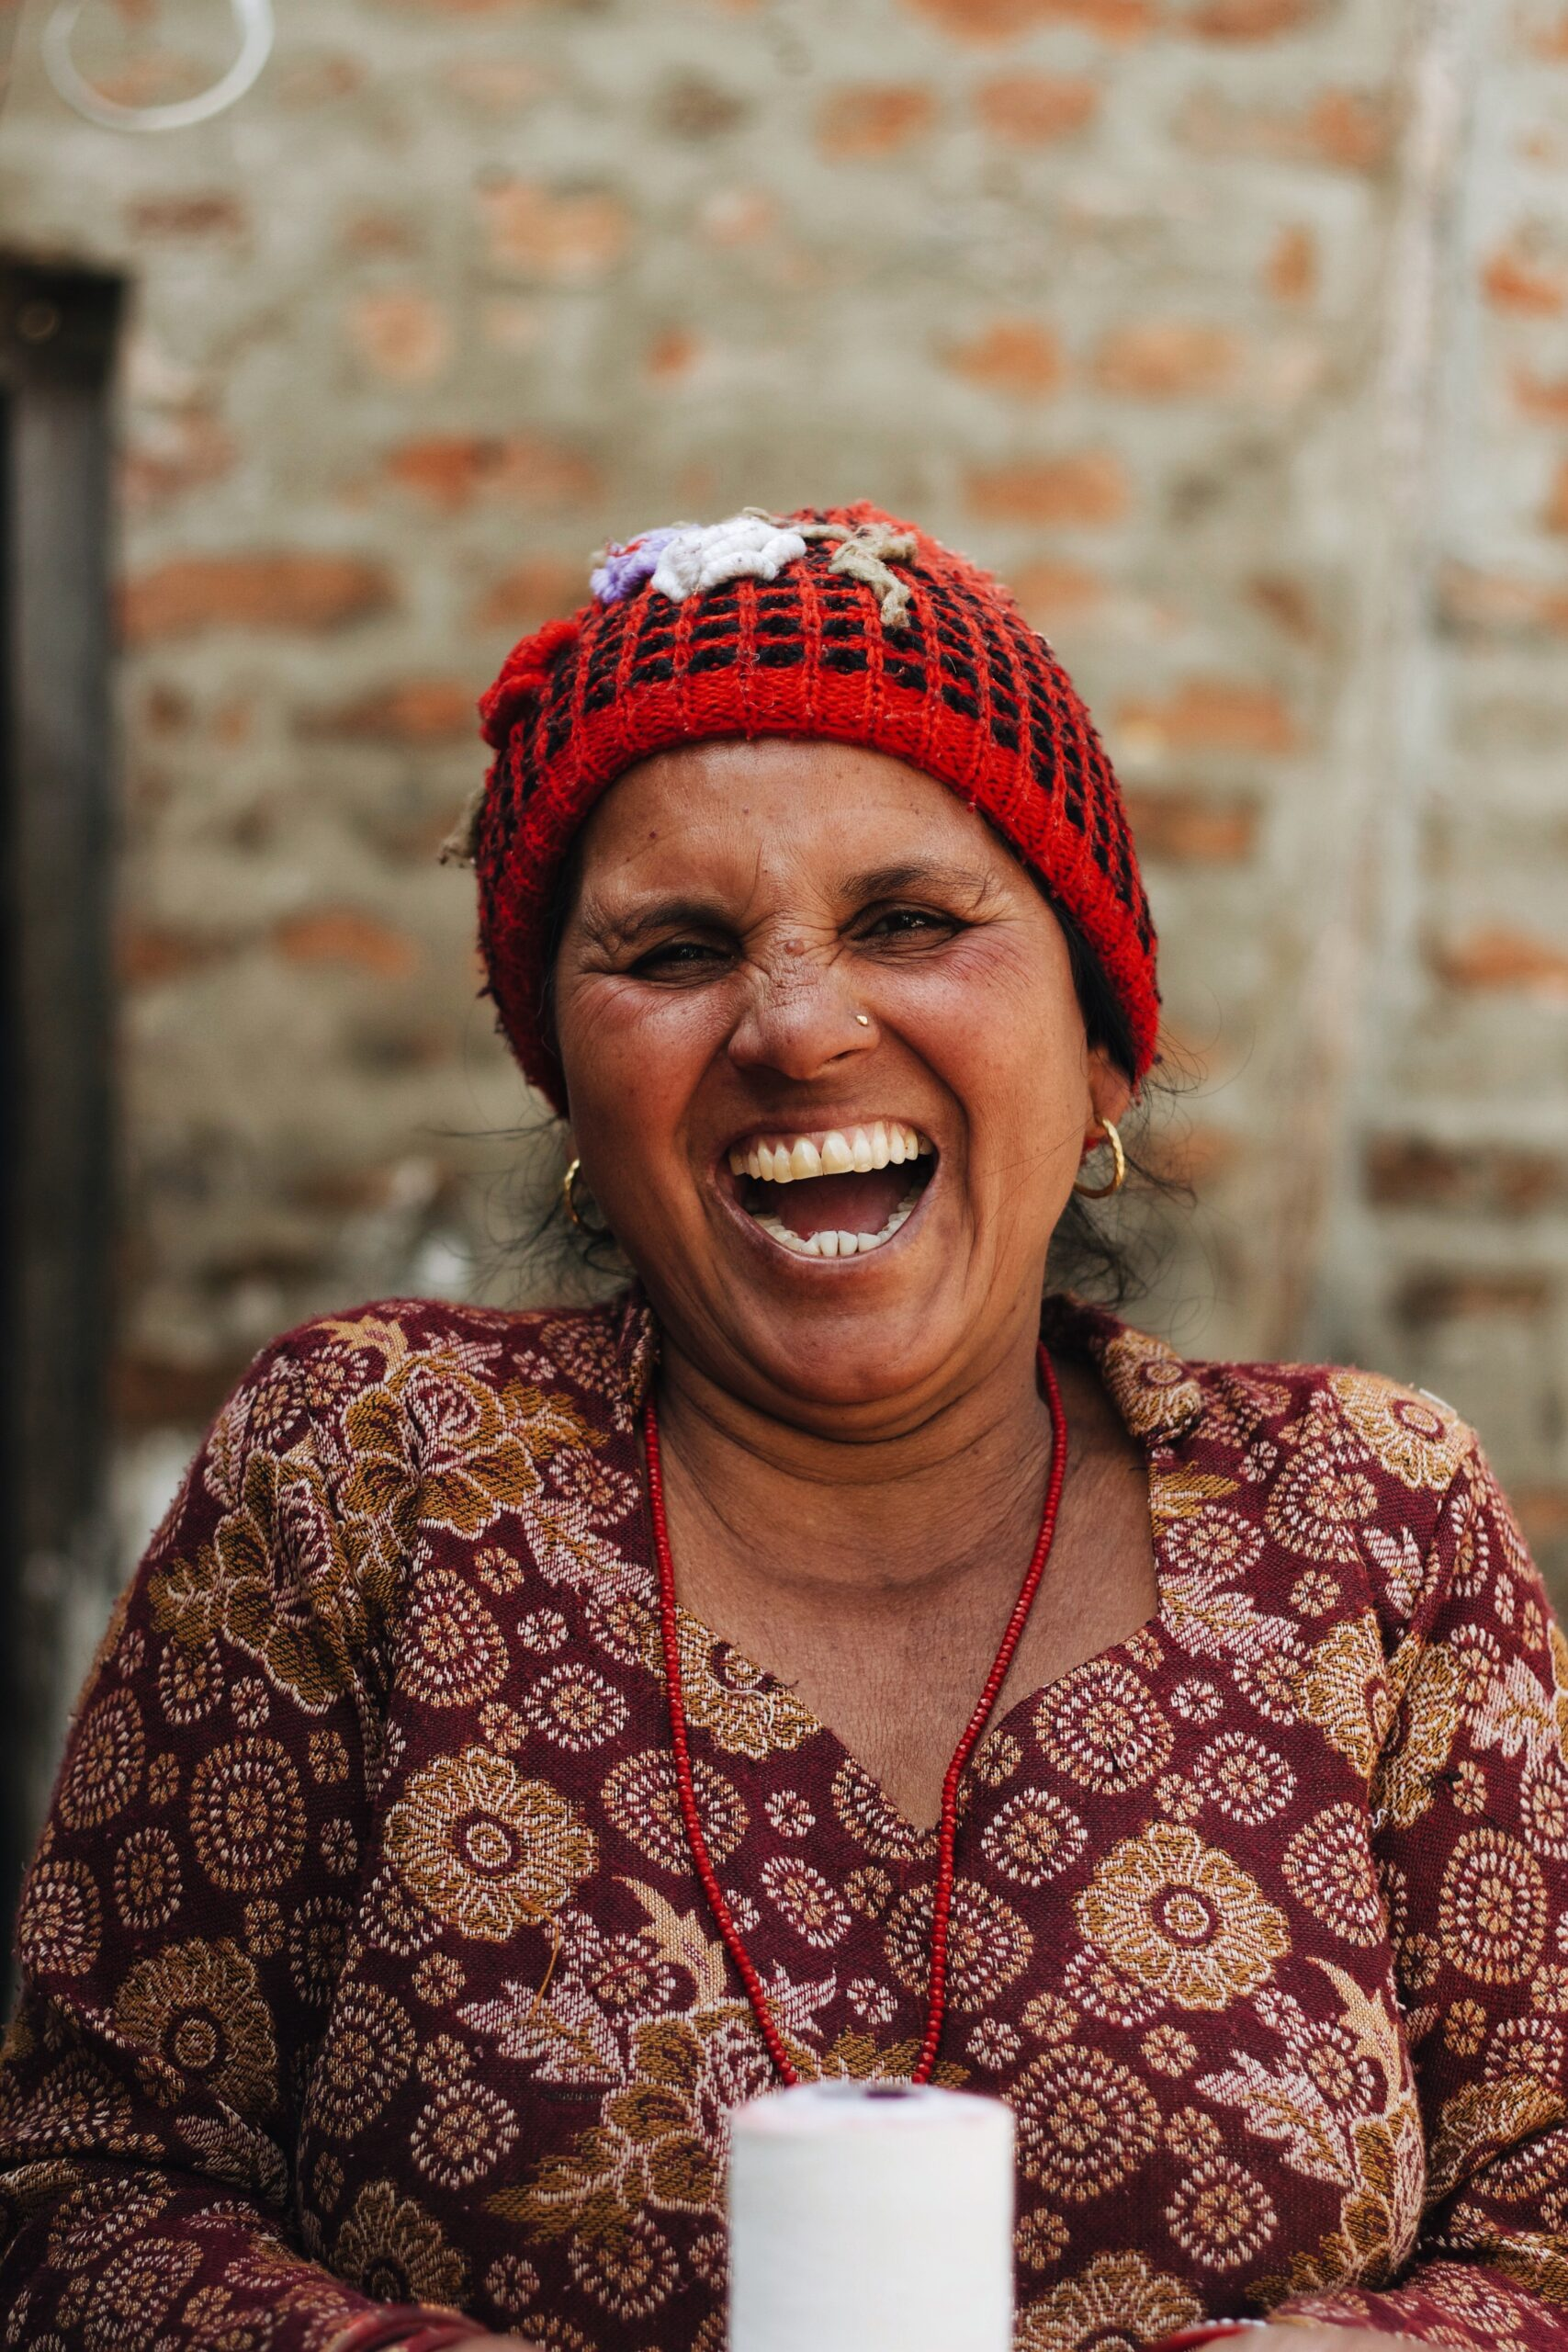 woman in knitted hat and colourful blouse laughing